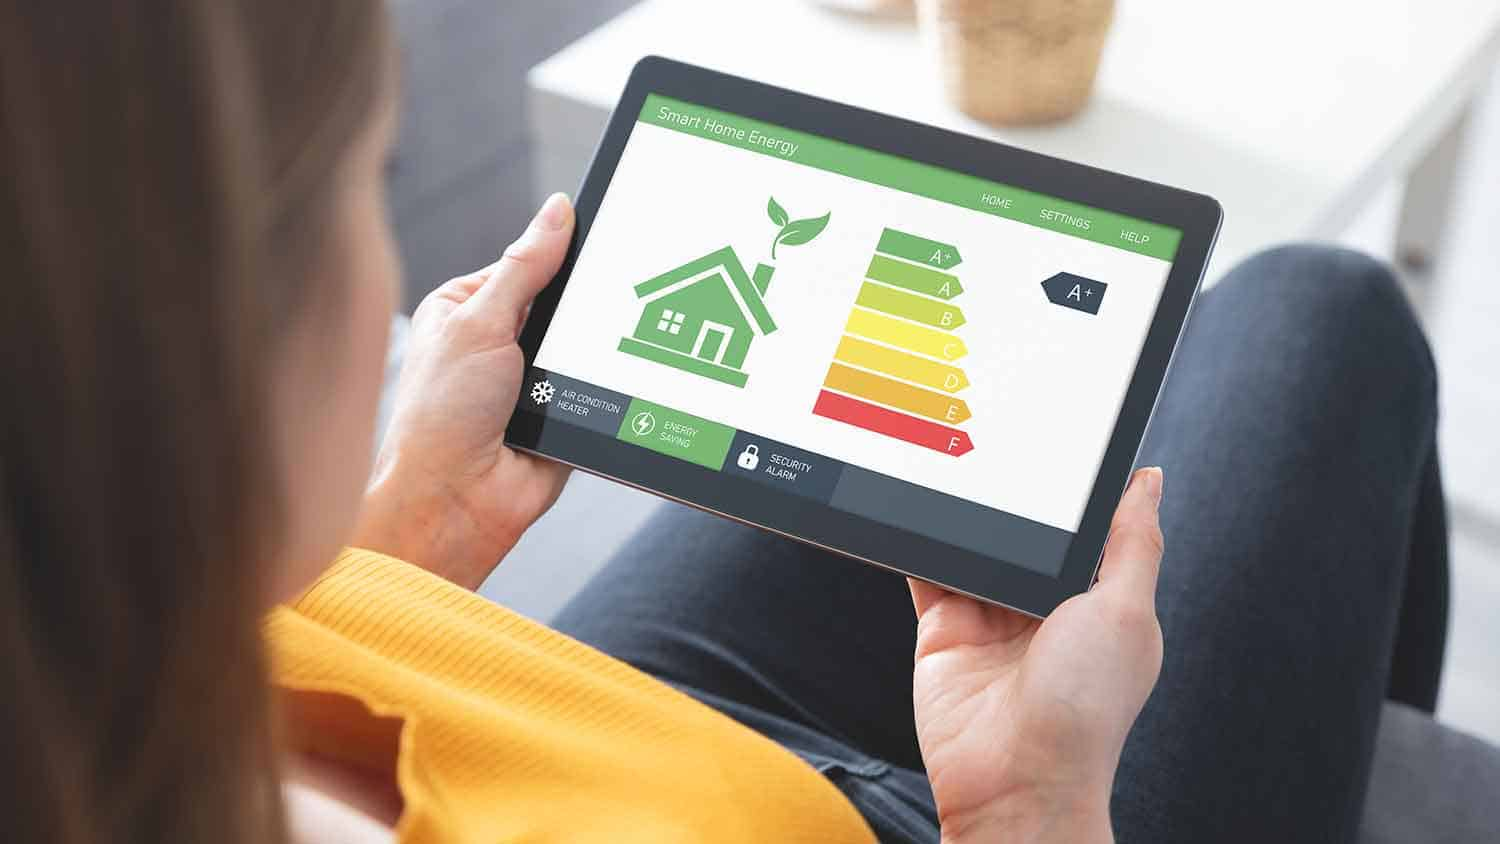 Woman looking at a computer tablet with 'smart home energy' readings on it. He rating is A+